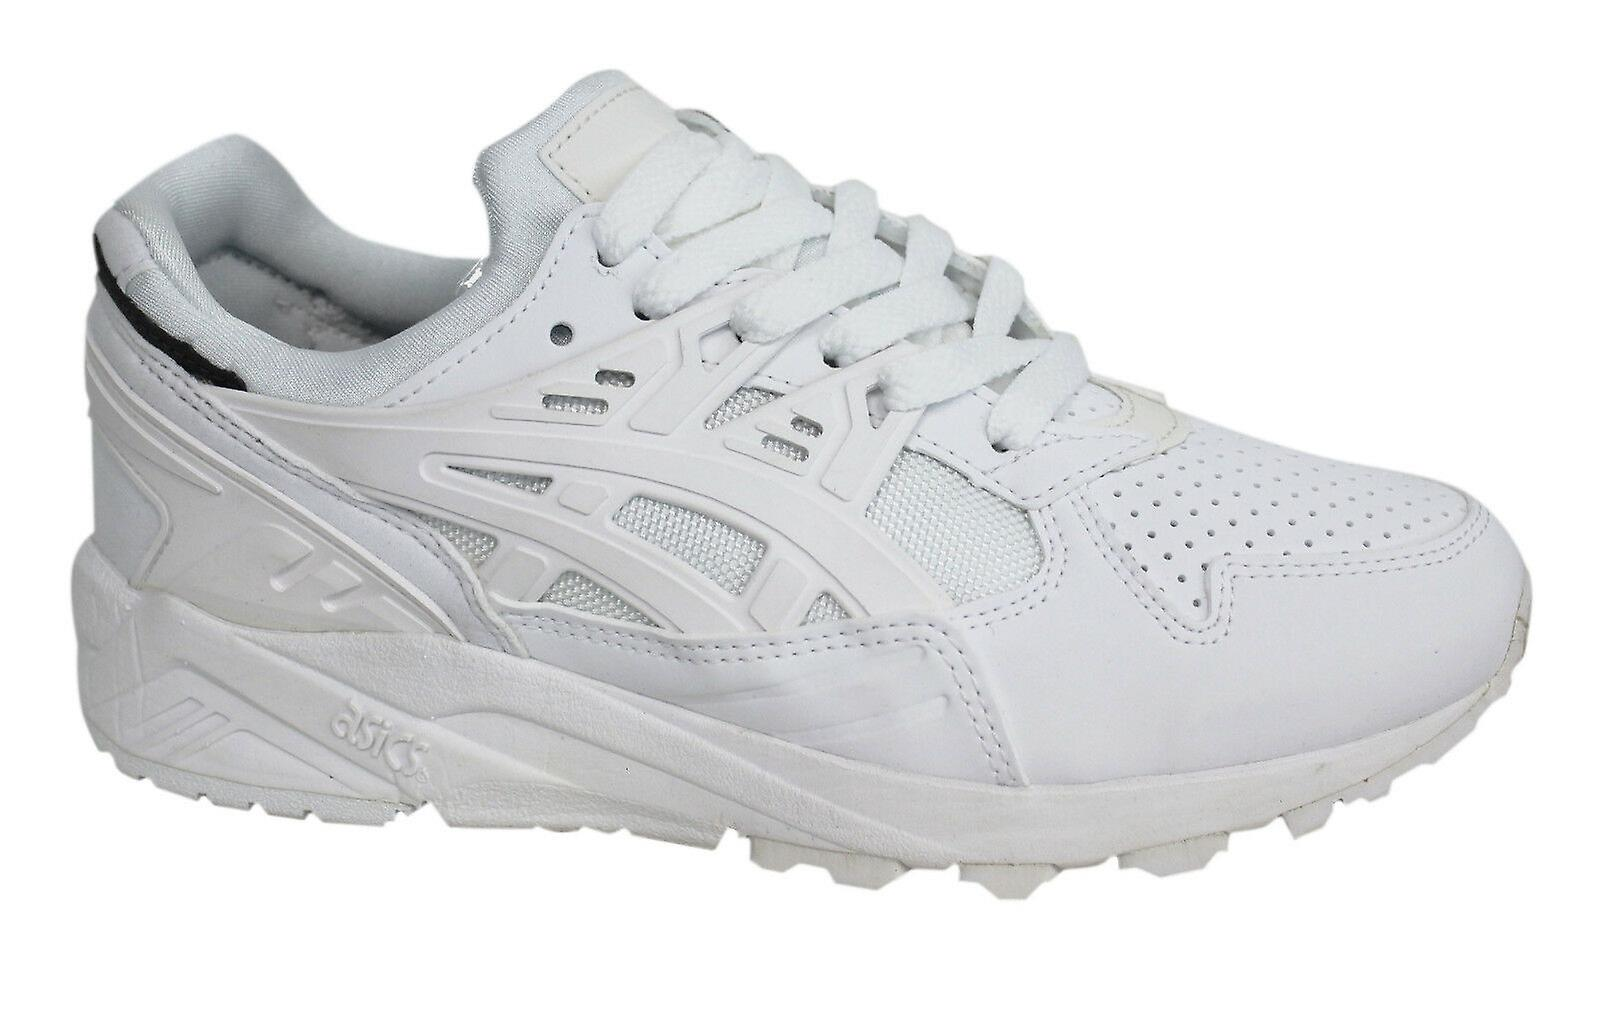 Asics Gel-Kayano Evo White Lace Up Men Synthetic Leather Trainers ...